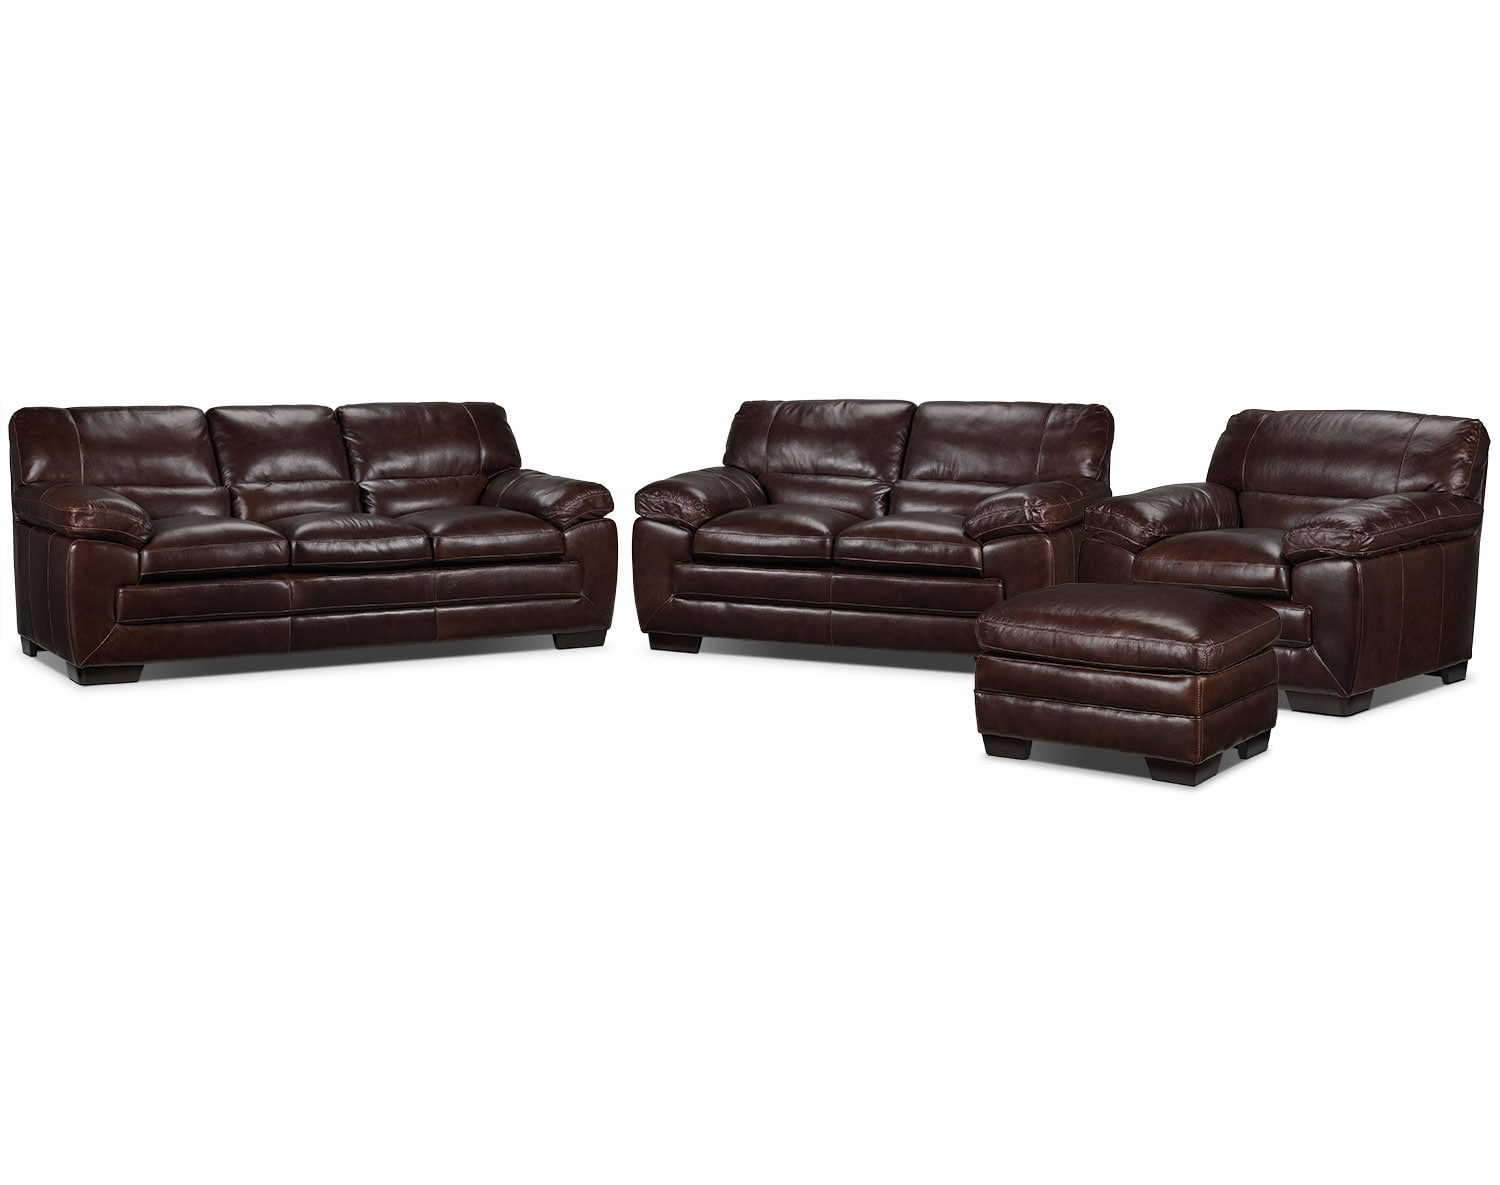 The Amarillo Collection - Brown